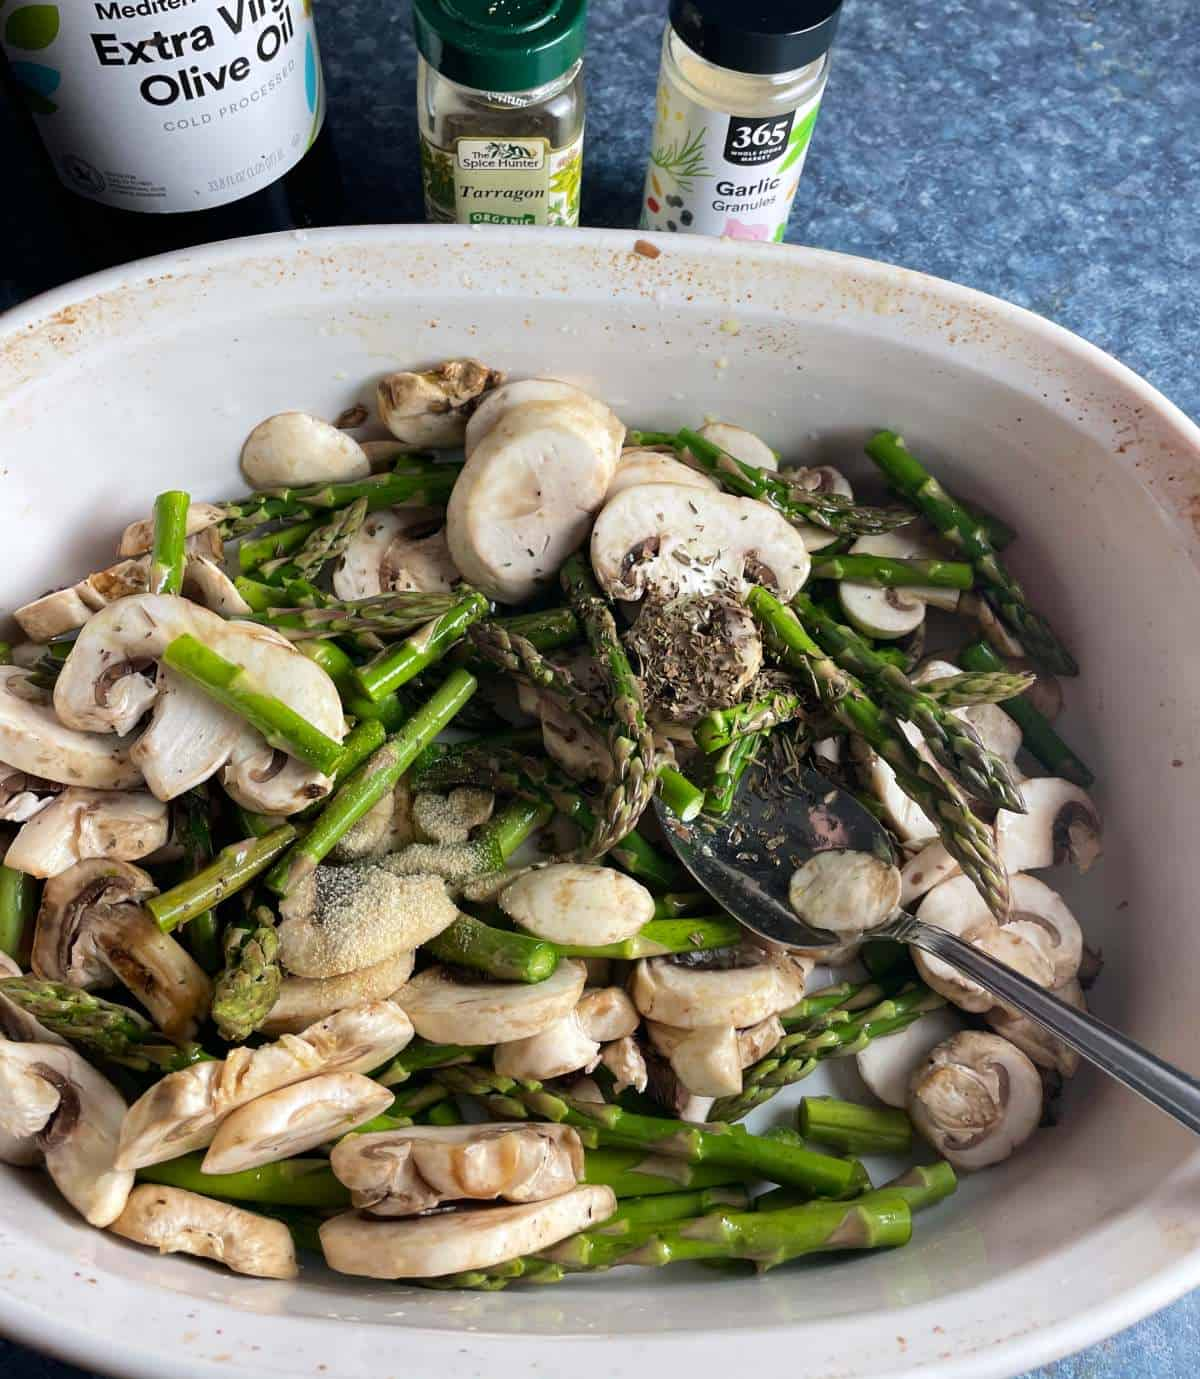 asparagus and mushrooms with tarragon, garlic powder and olive oil.